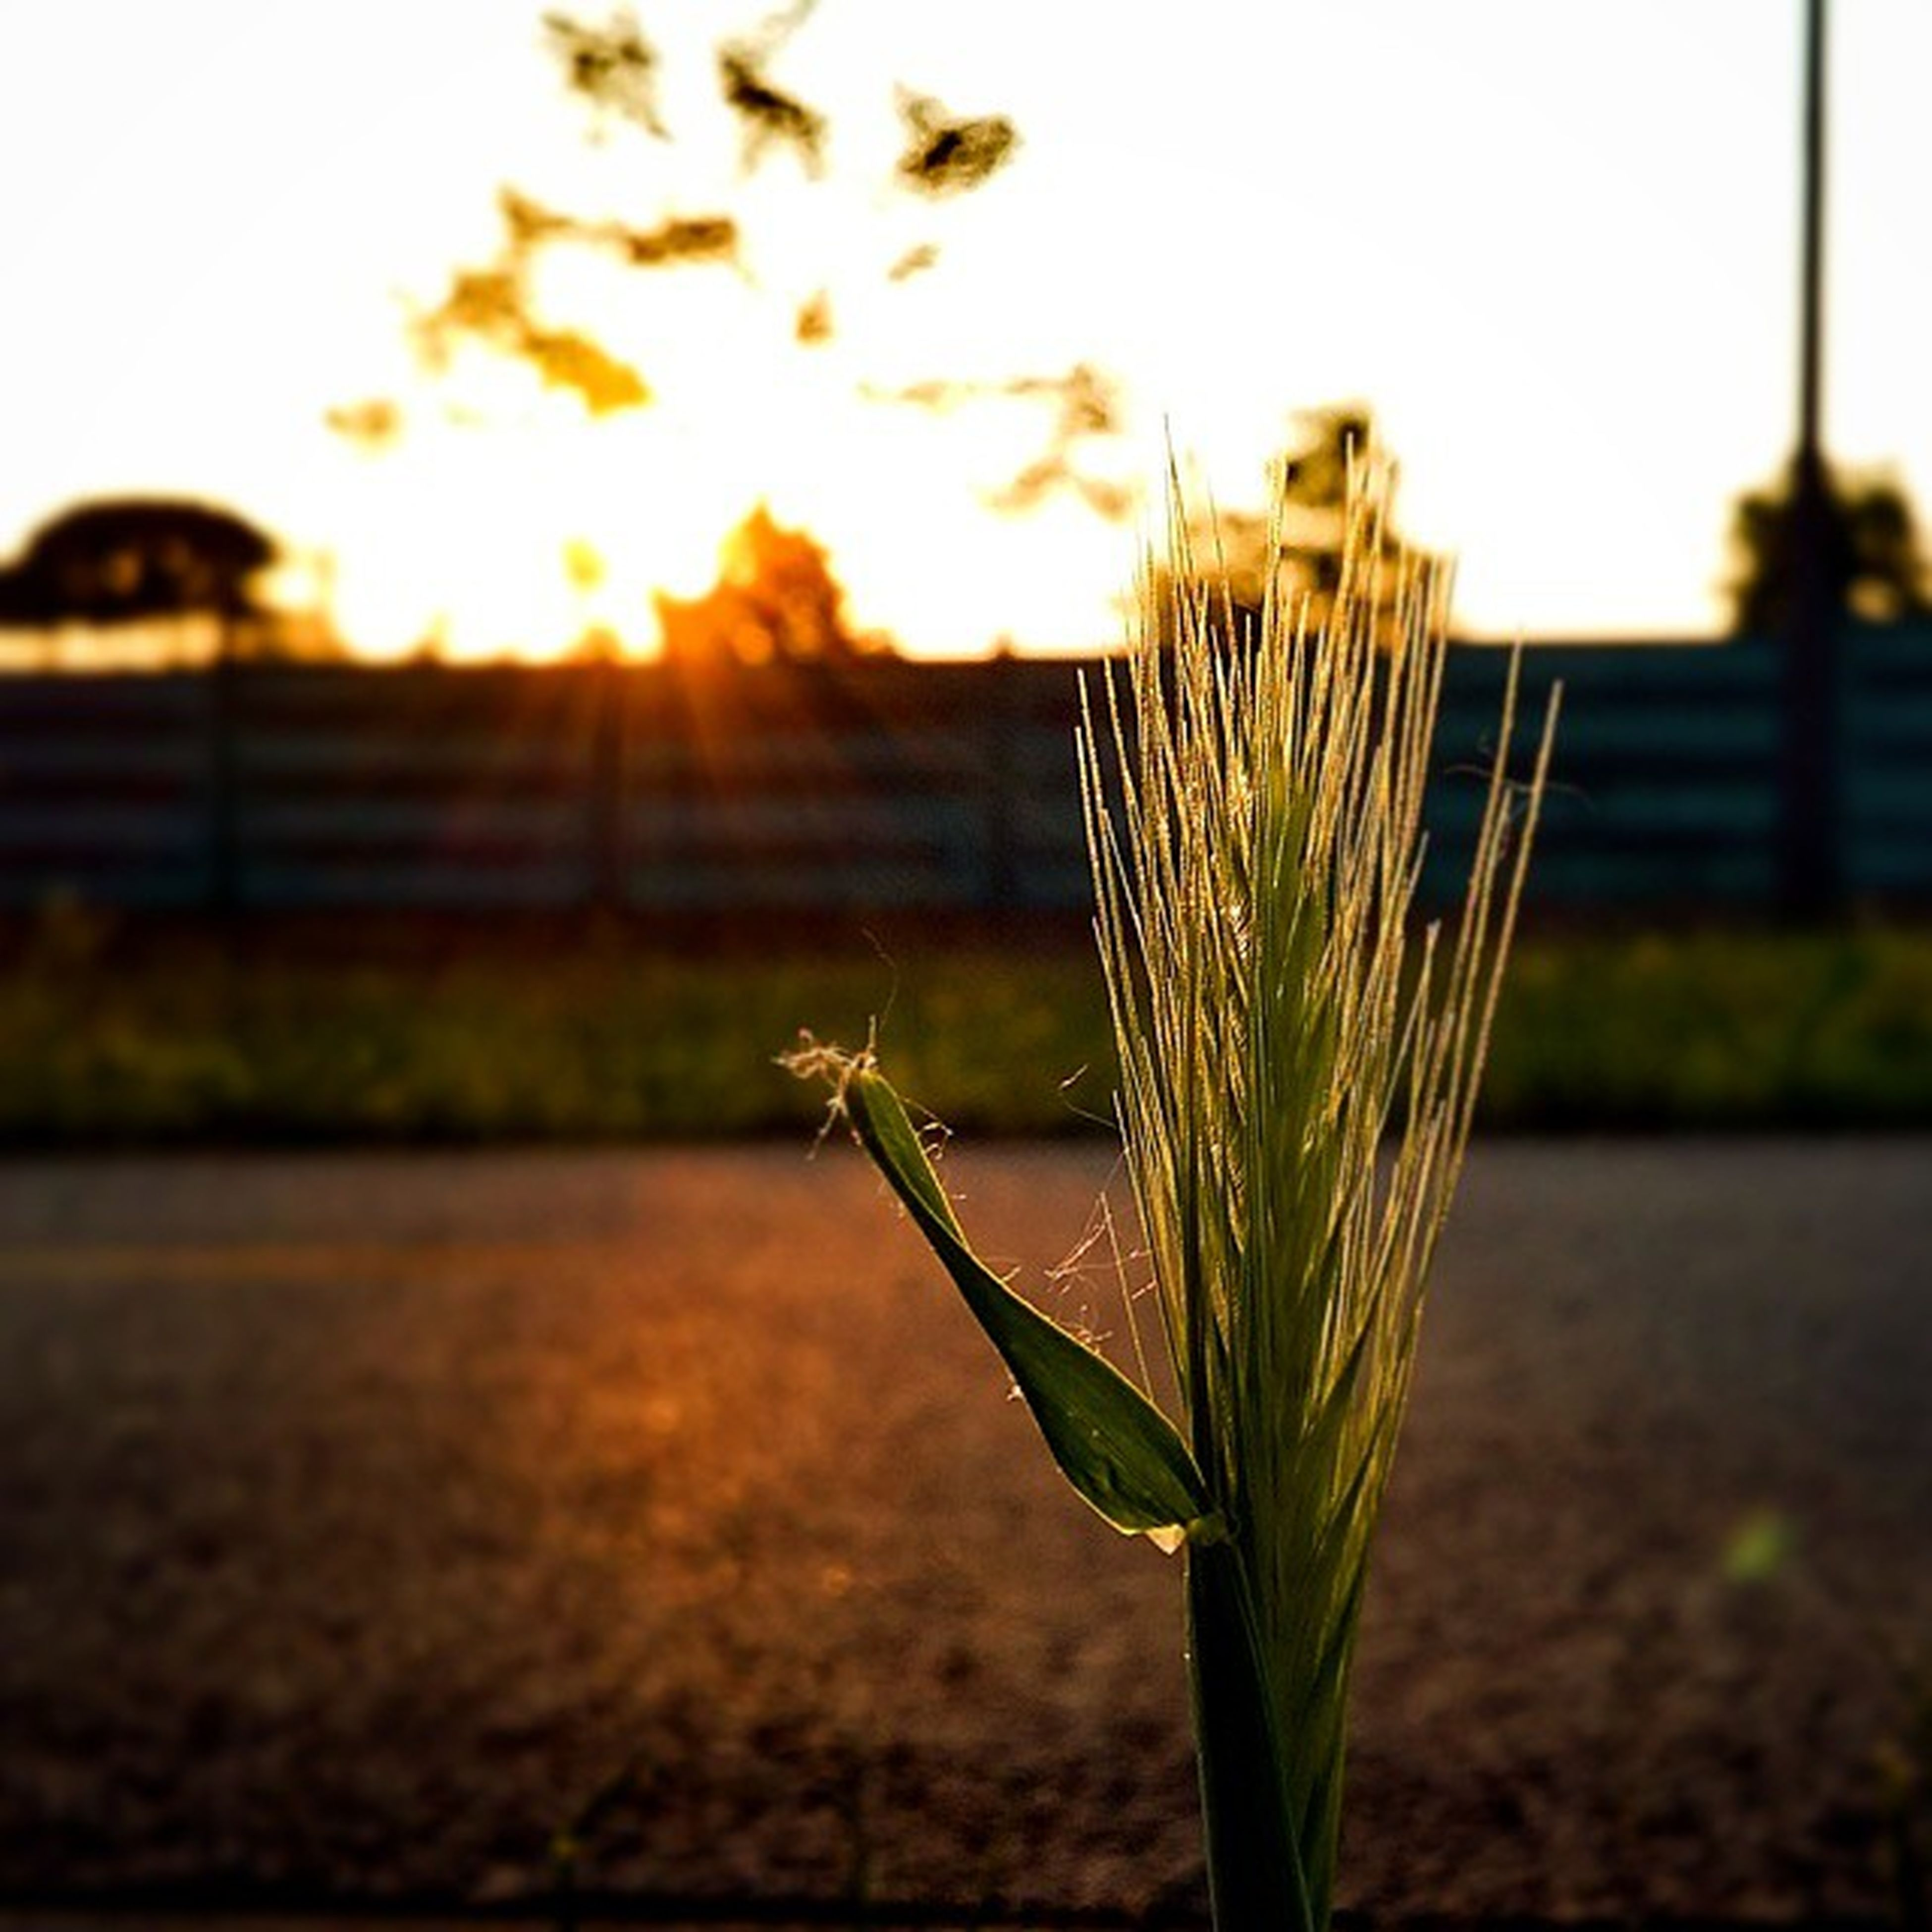 focus on foreground, growth, plant, sunset, close-up, stem, nature, fragility, freshness, selective focus, sun, beauty in nature, flower, field, bud, sunlight, growing, tranquility, outdoors, no people